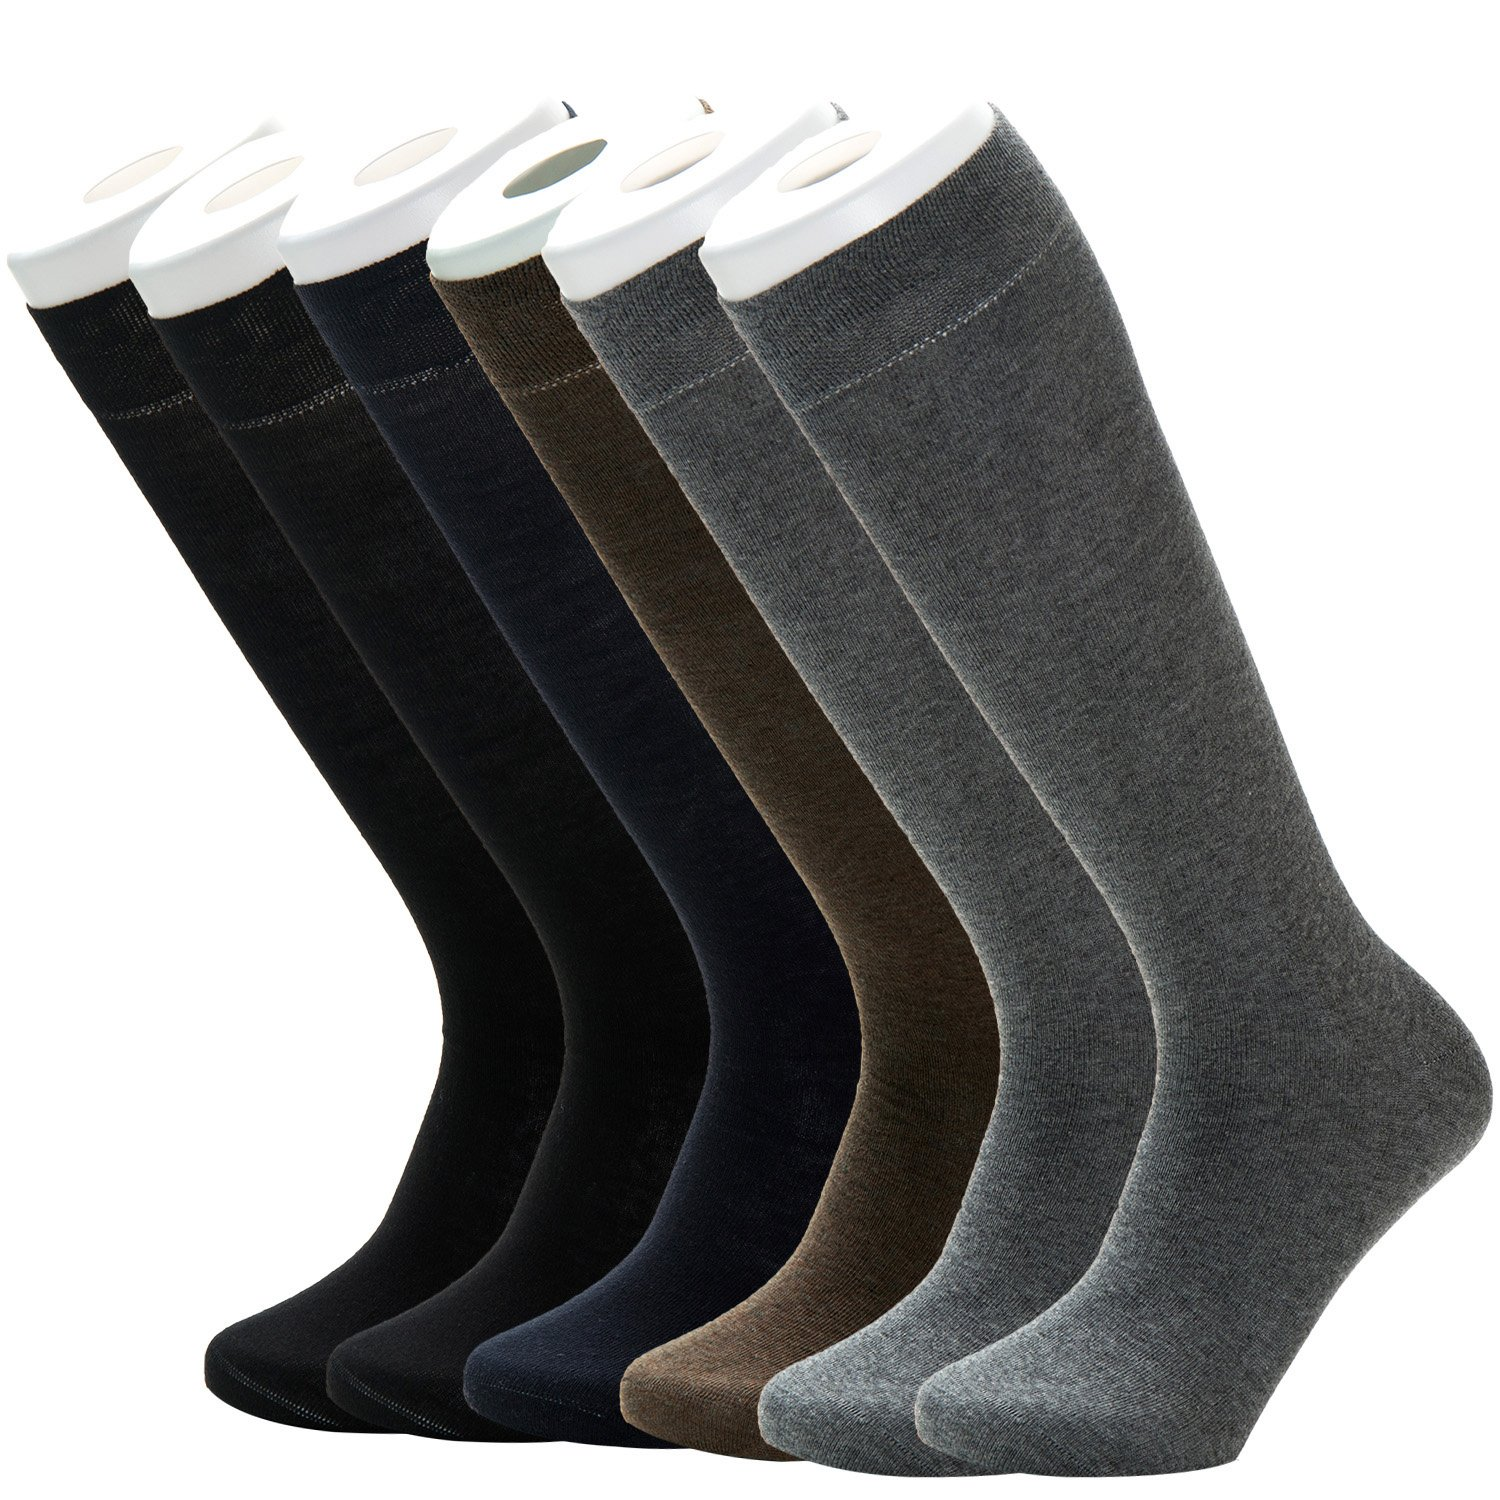 Mens 98% Cotton Rich Soft Knee High Slightly Thin Dress Socks for Business Office Casual Long Sock 6Pack